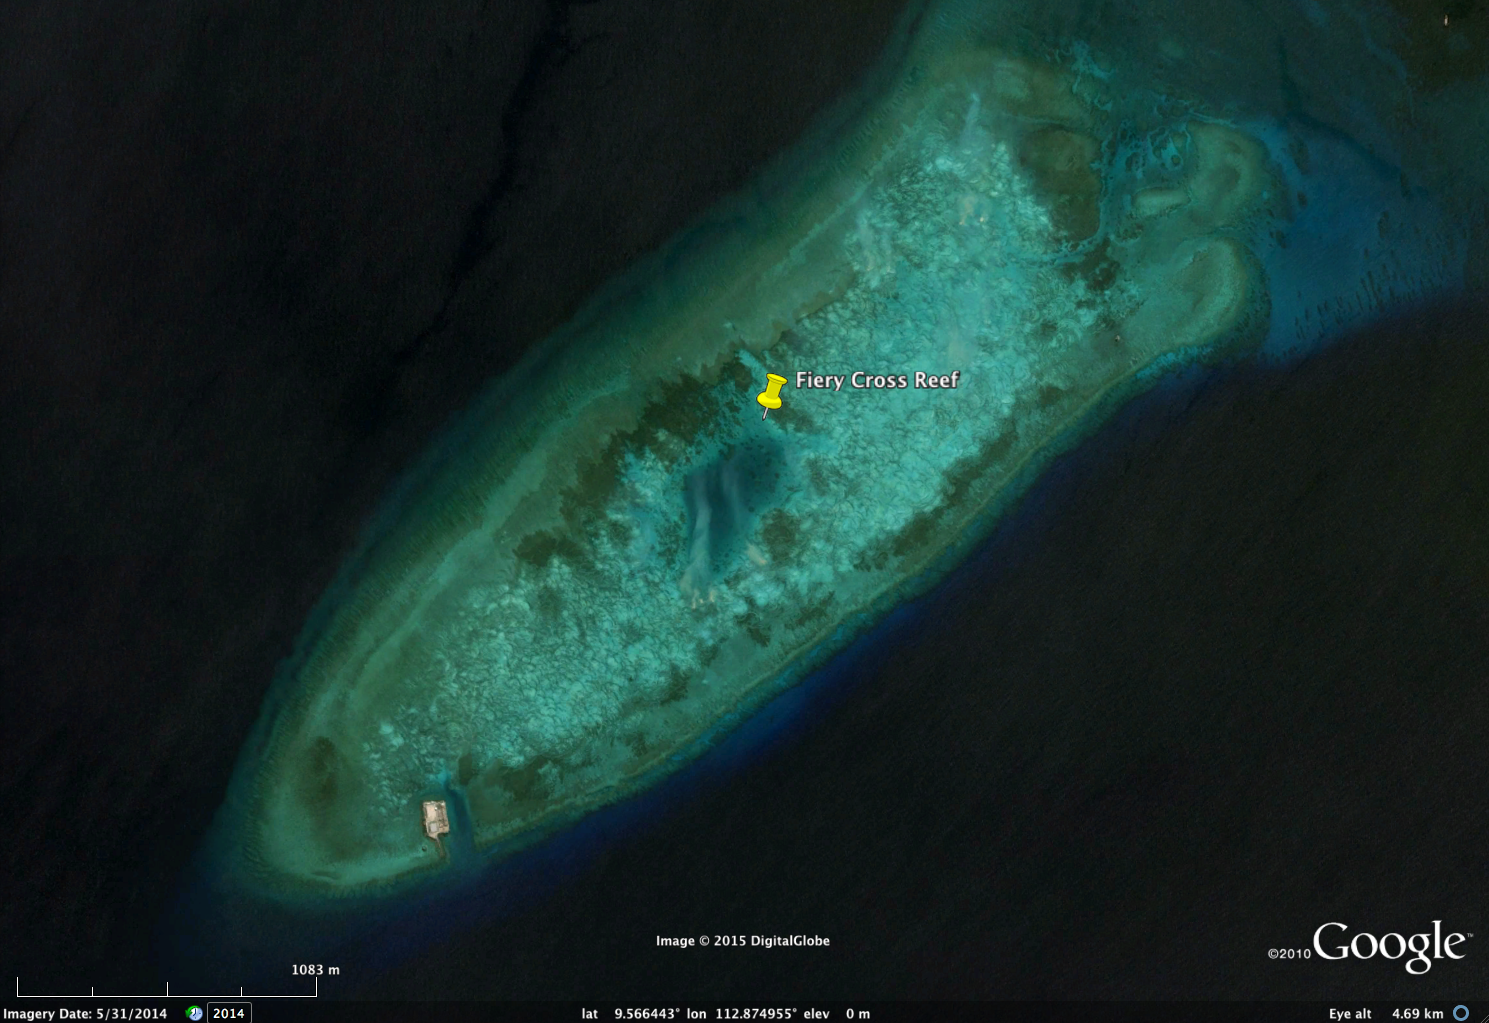 FieryCrossReef, May 31, 2014. Note the only man-made structure (small platform) at the bottom left of island. Light green and light blue areas are coral reef or adjacent habitat. Image copyright DigitalGlobe, via Google.